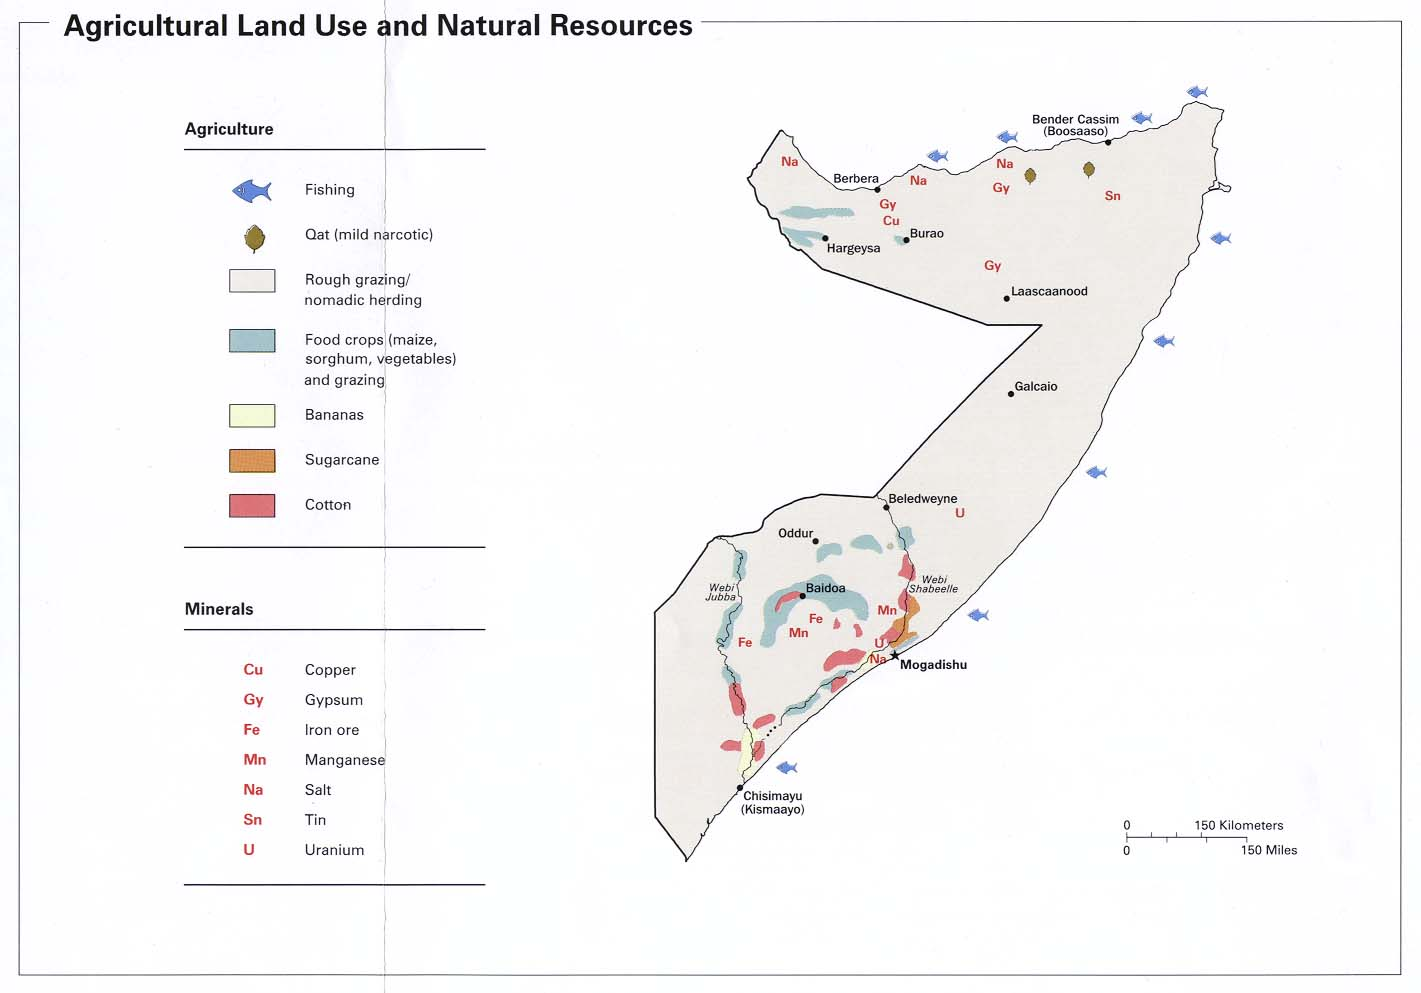 Somalia Agricultural Land Use and Natural Resources Map